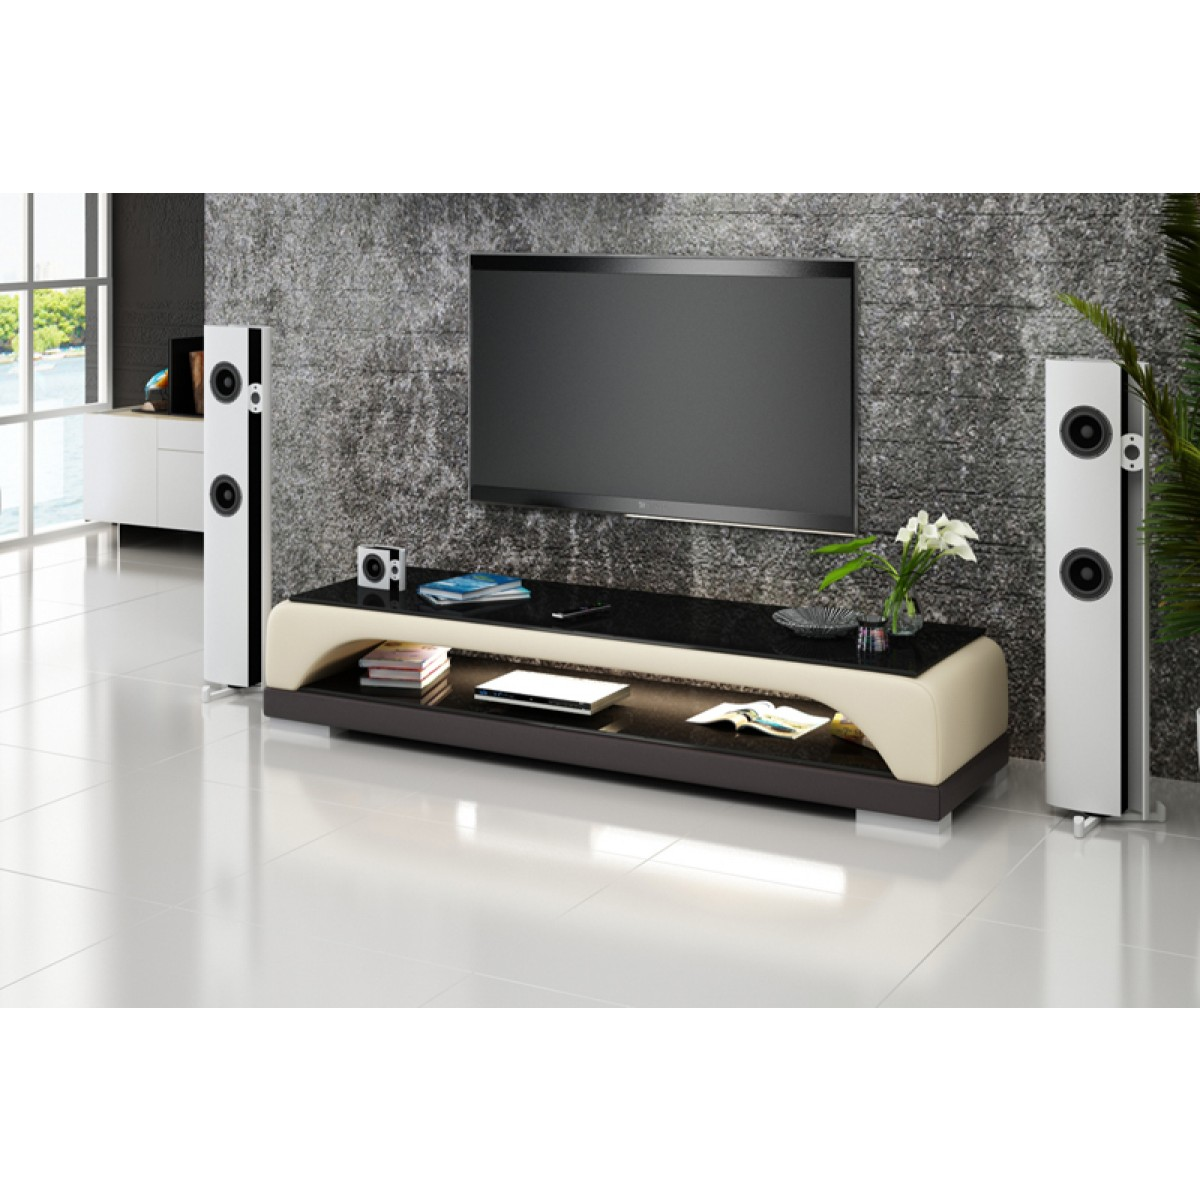 Meuble tv design personnalisable bolzano pop for Meuble tv beige